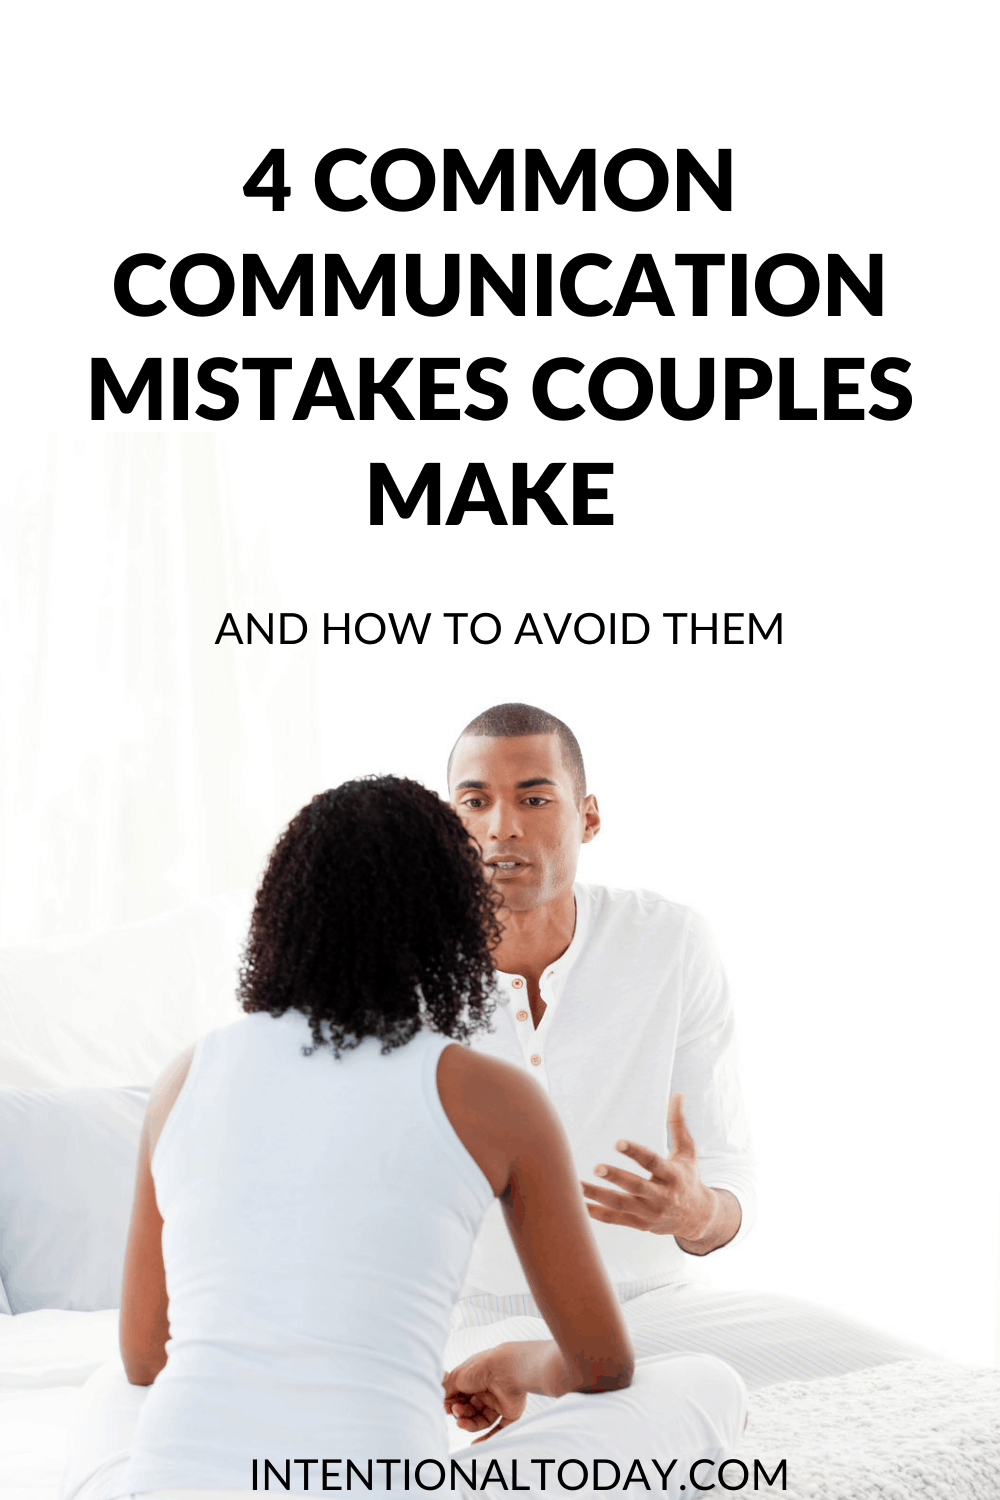 Tired of feeling like enemies when you try to solve problems? 4 common communication mistakes couples make and how to avoid them